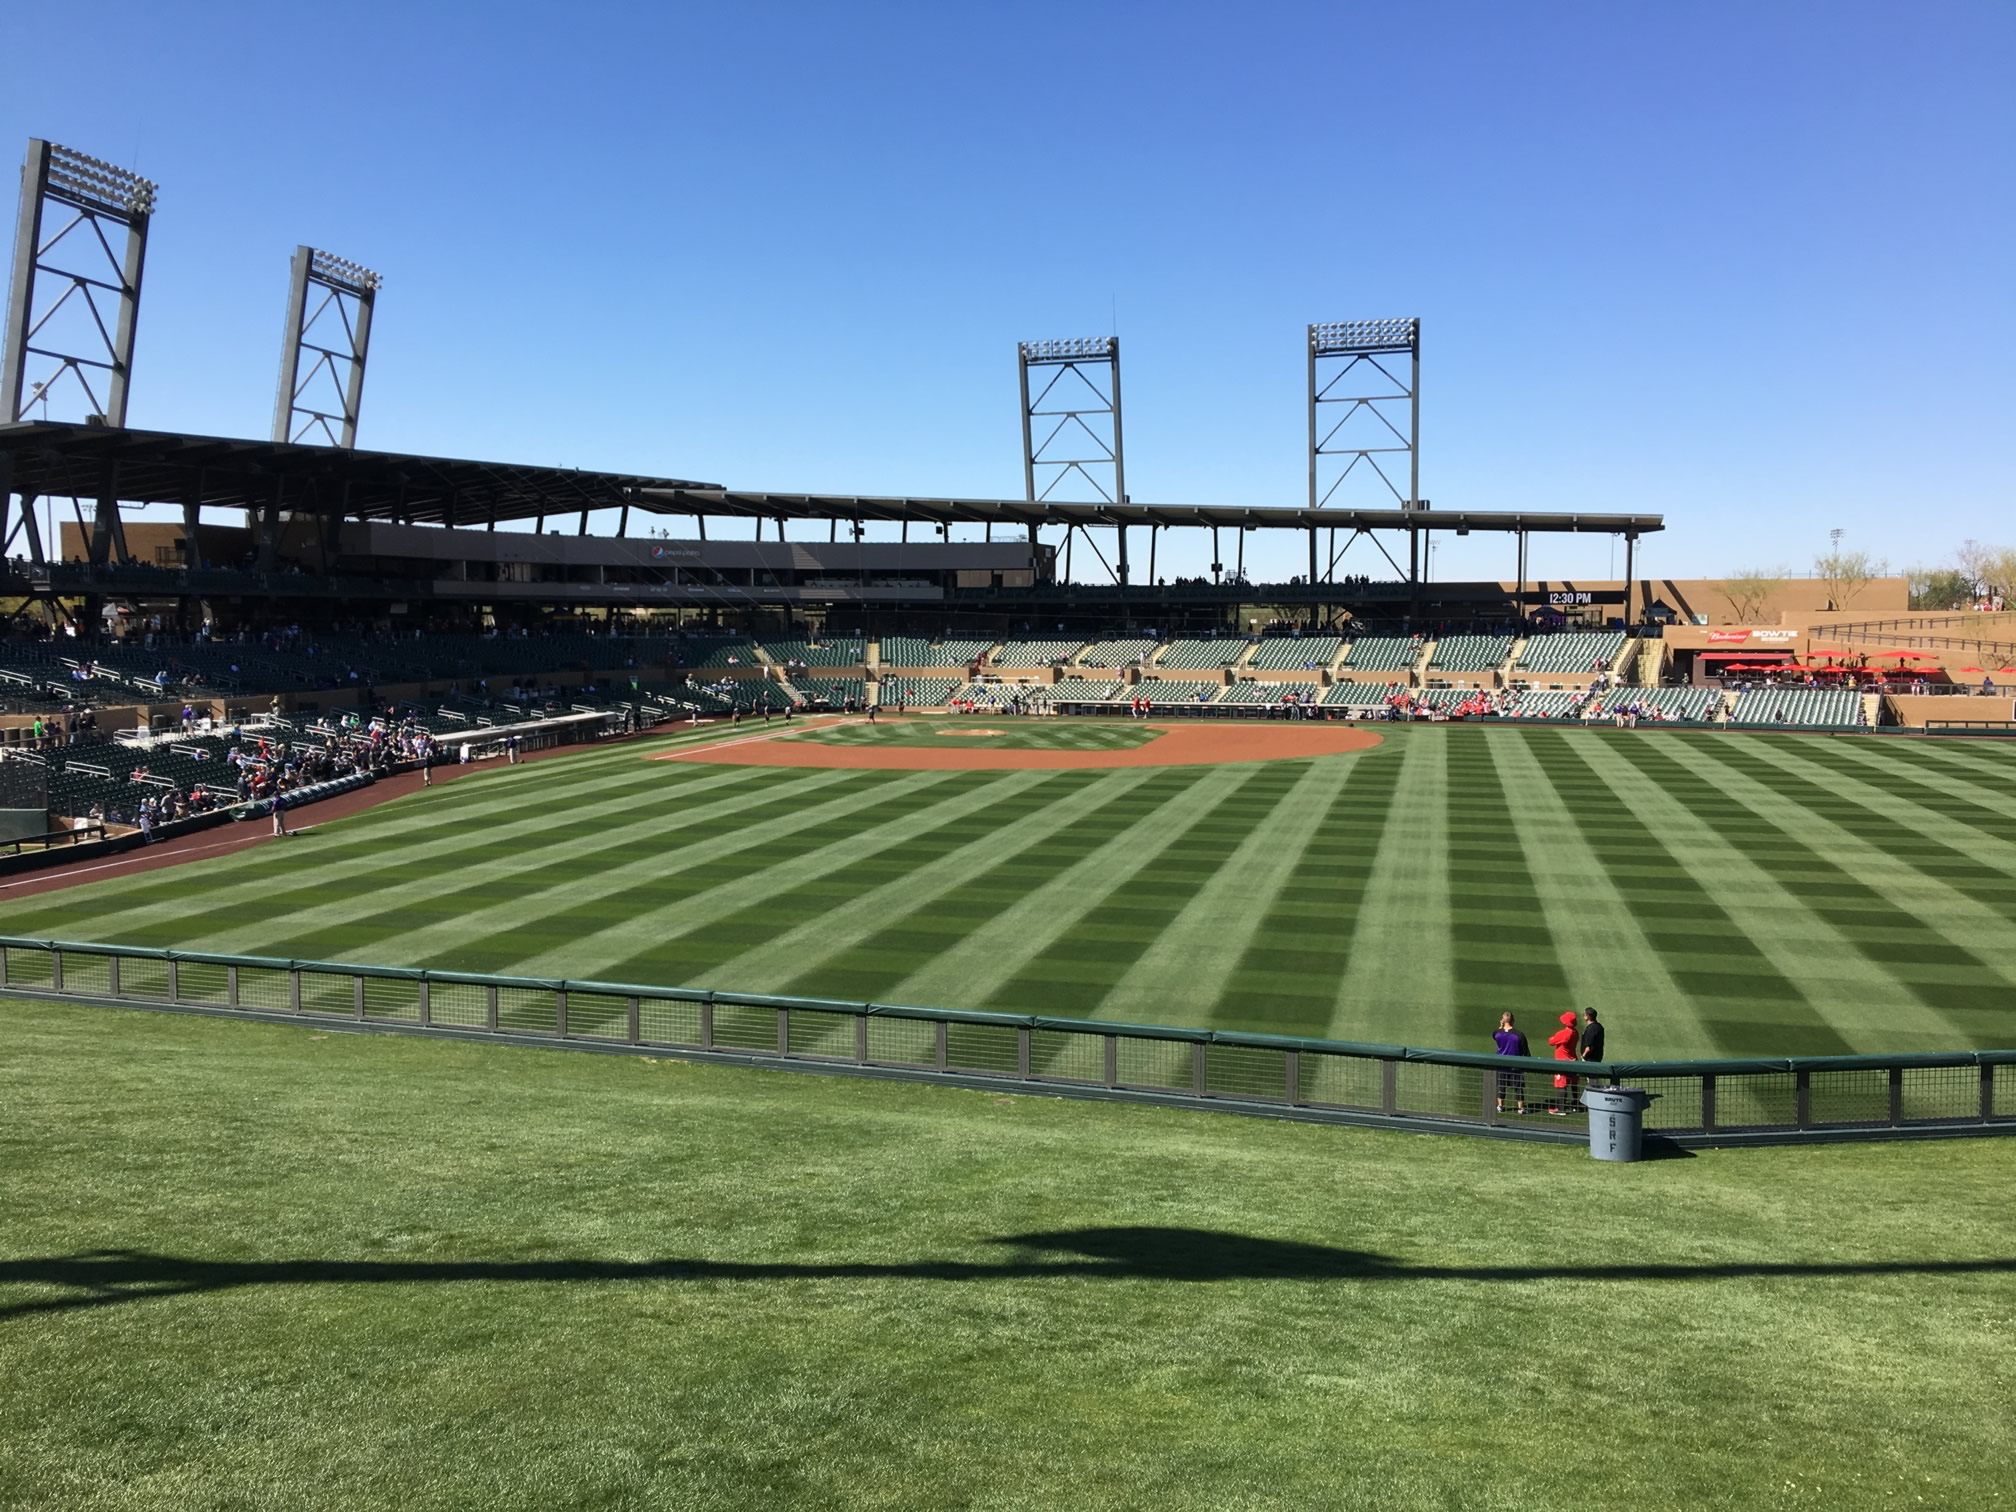 Right Field Lawn at Salt River Field